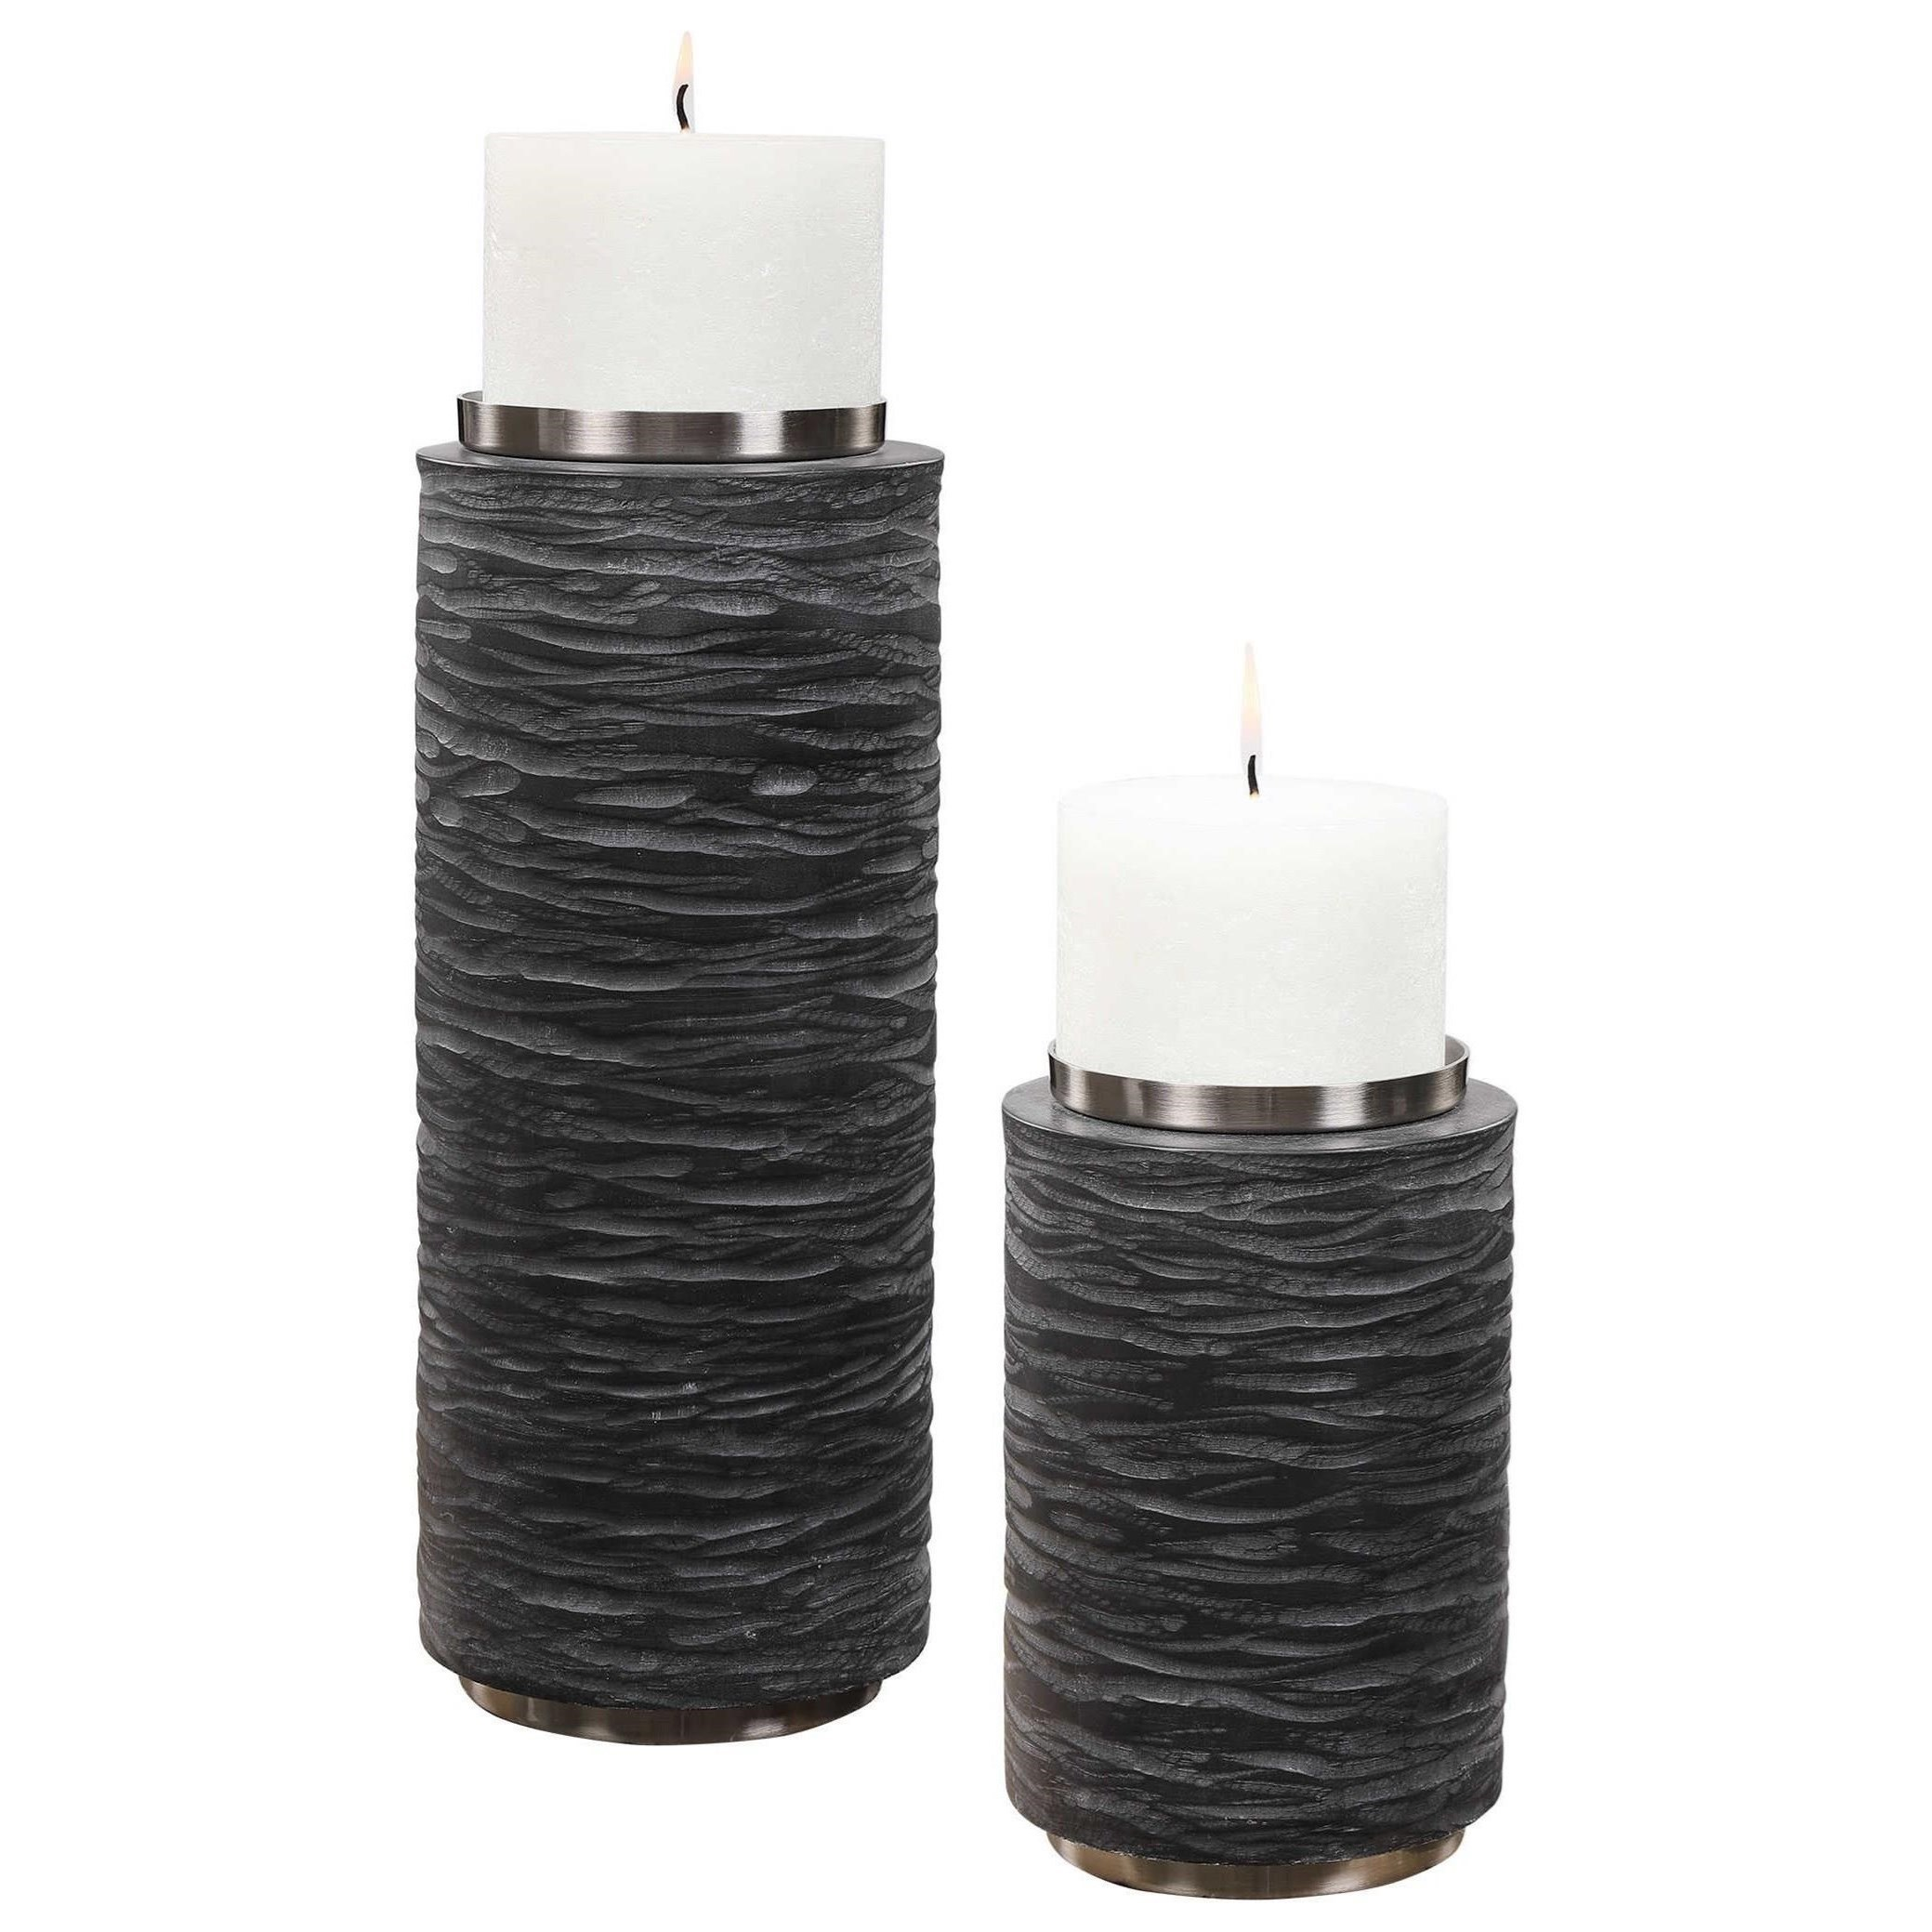 Stone Gray Candleholders, S/2